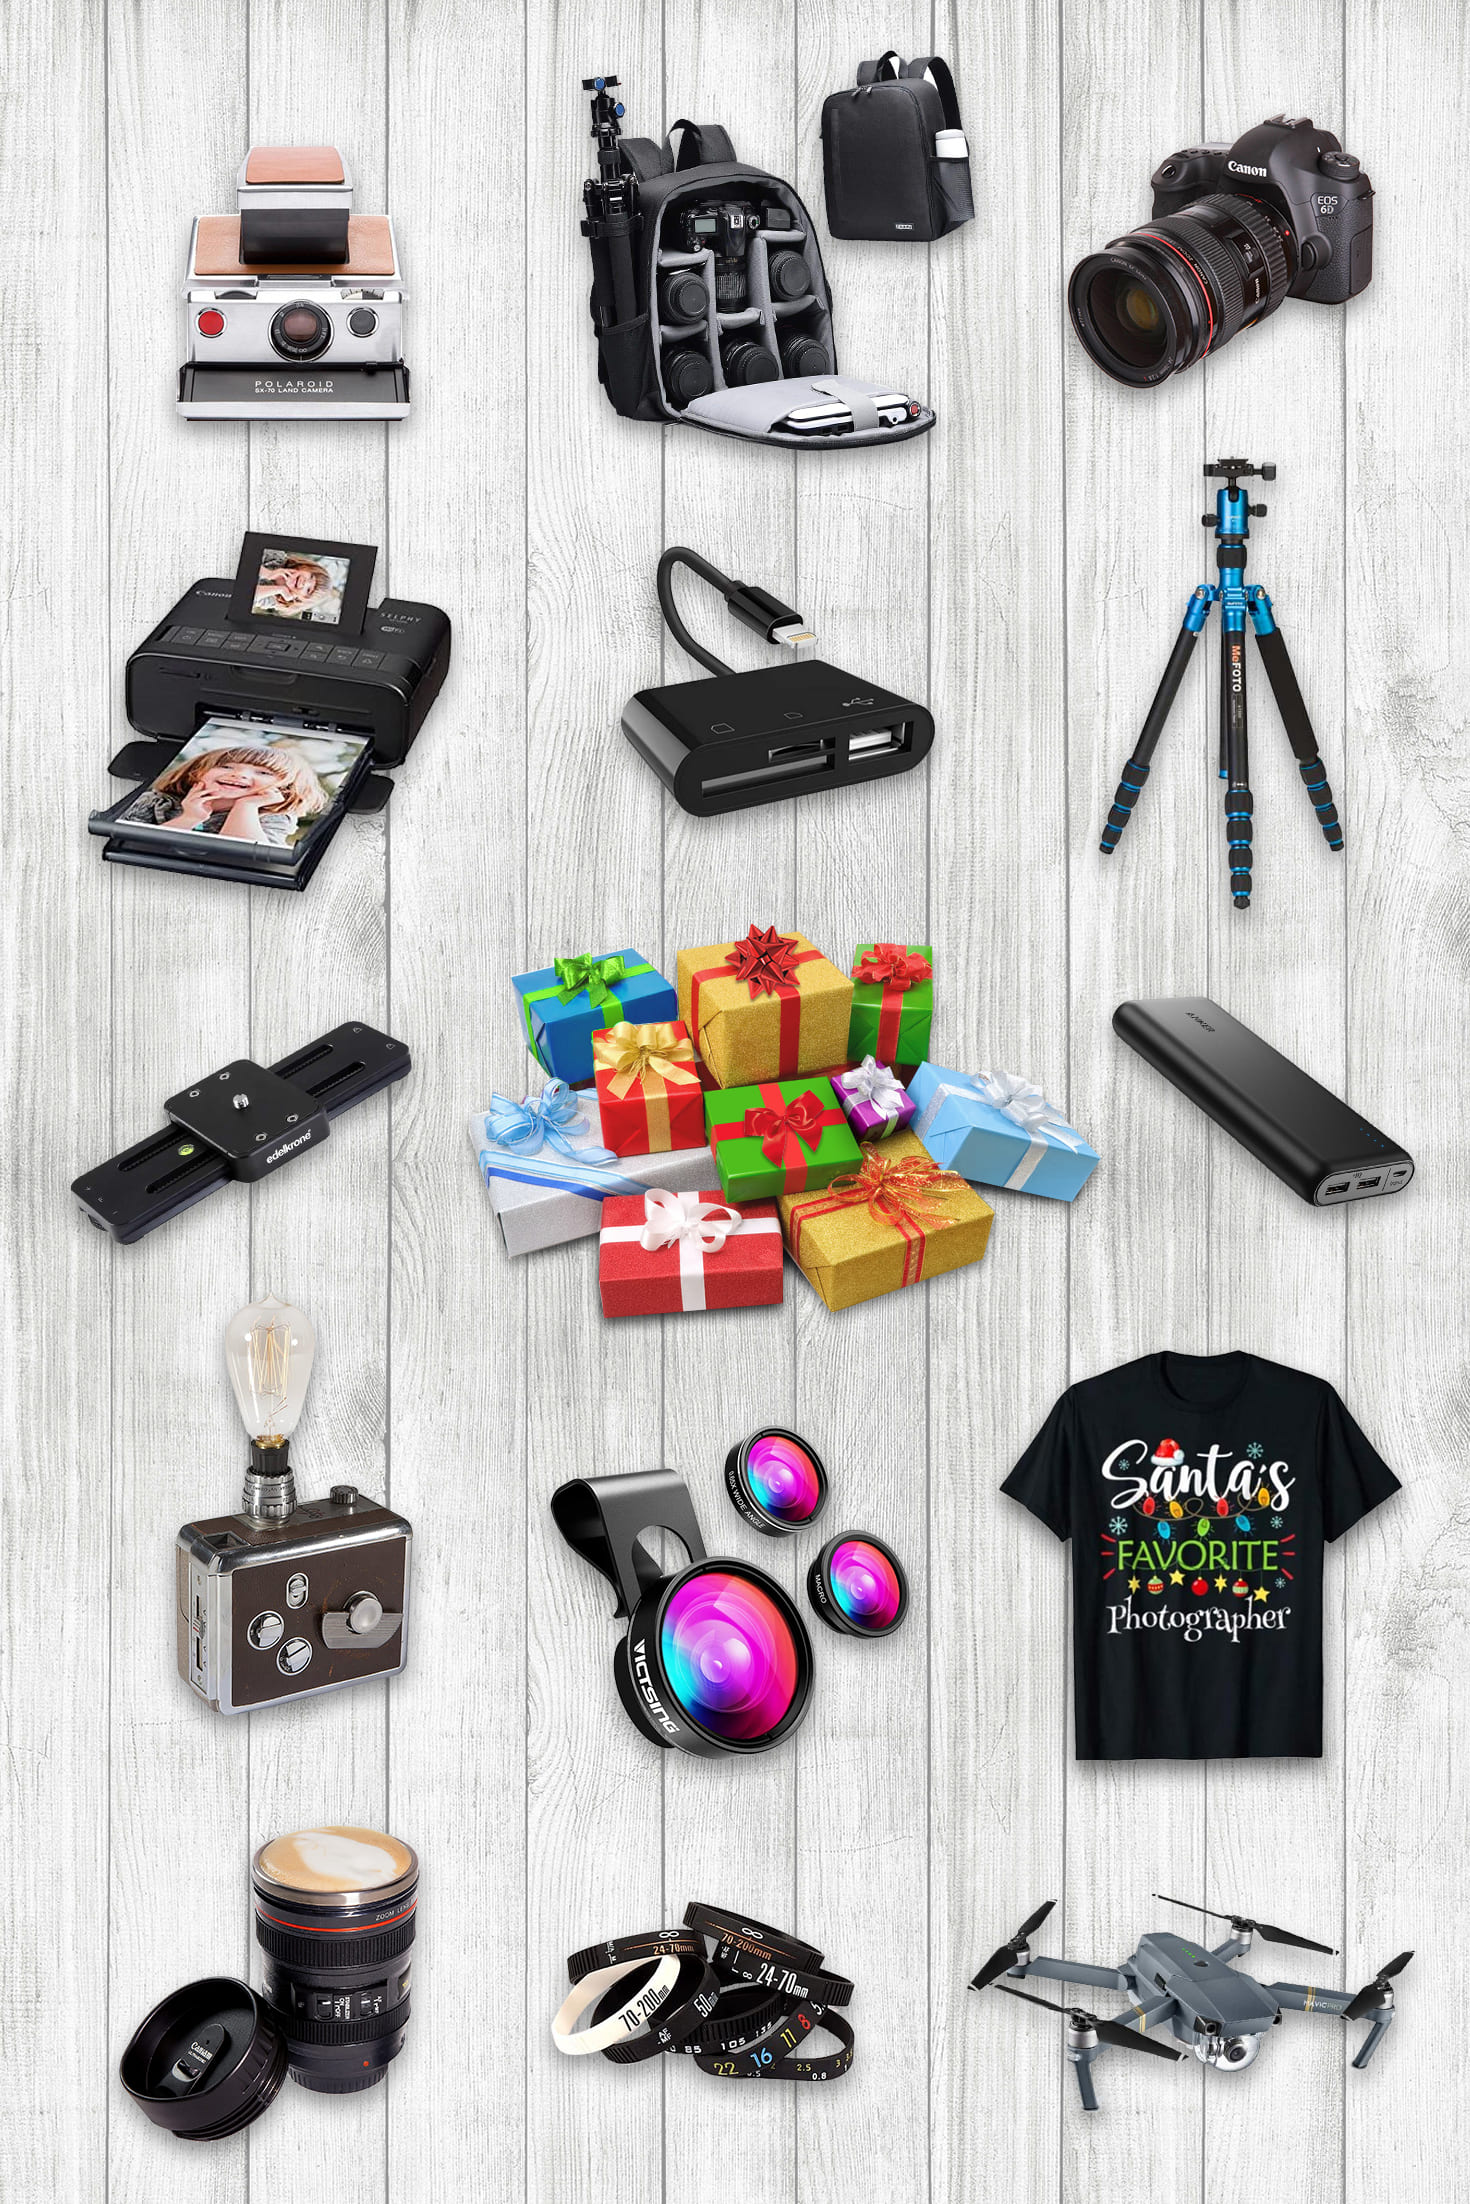 14 examples of the best gifts for photographers: T-shirts, cameras, lenses, bags, lenses and drones.